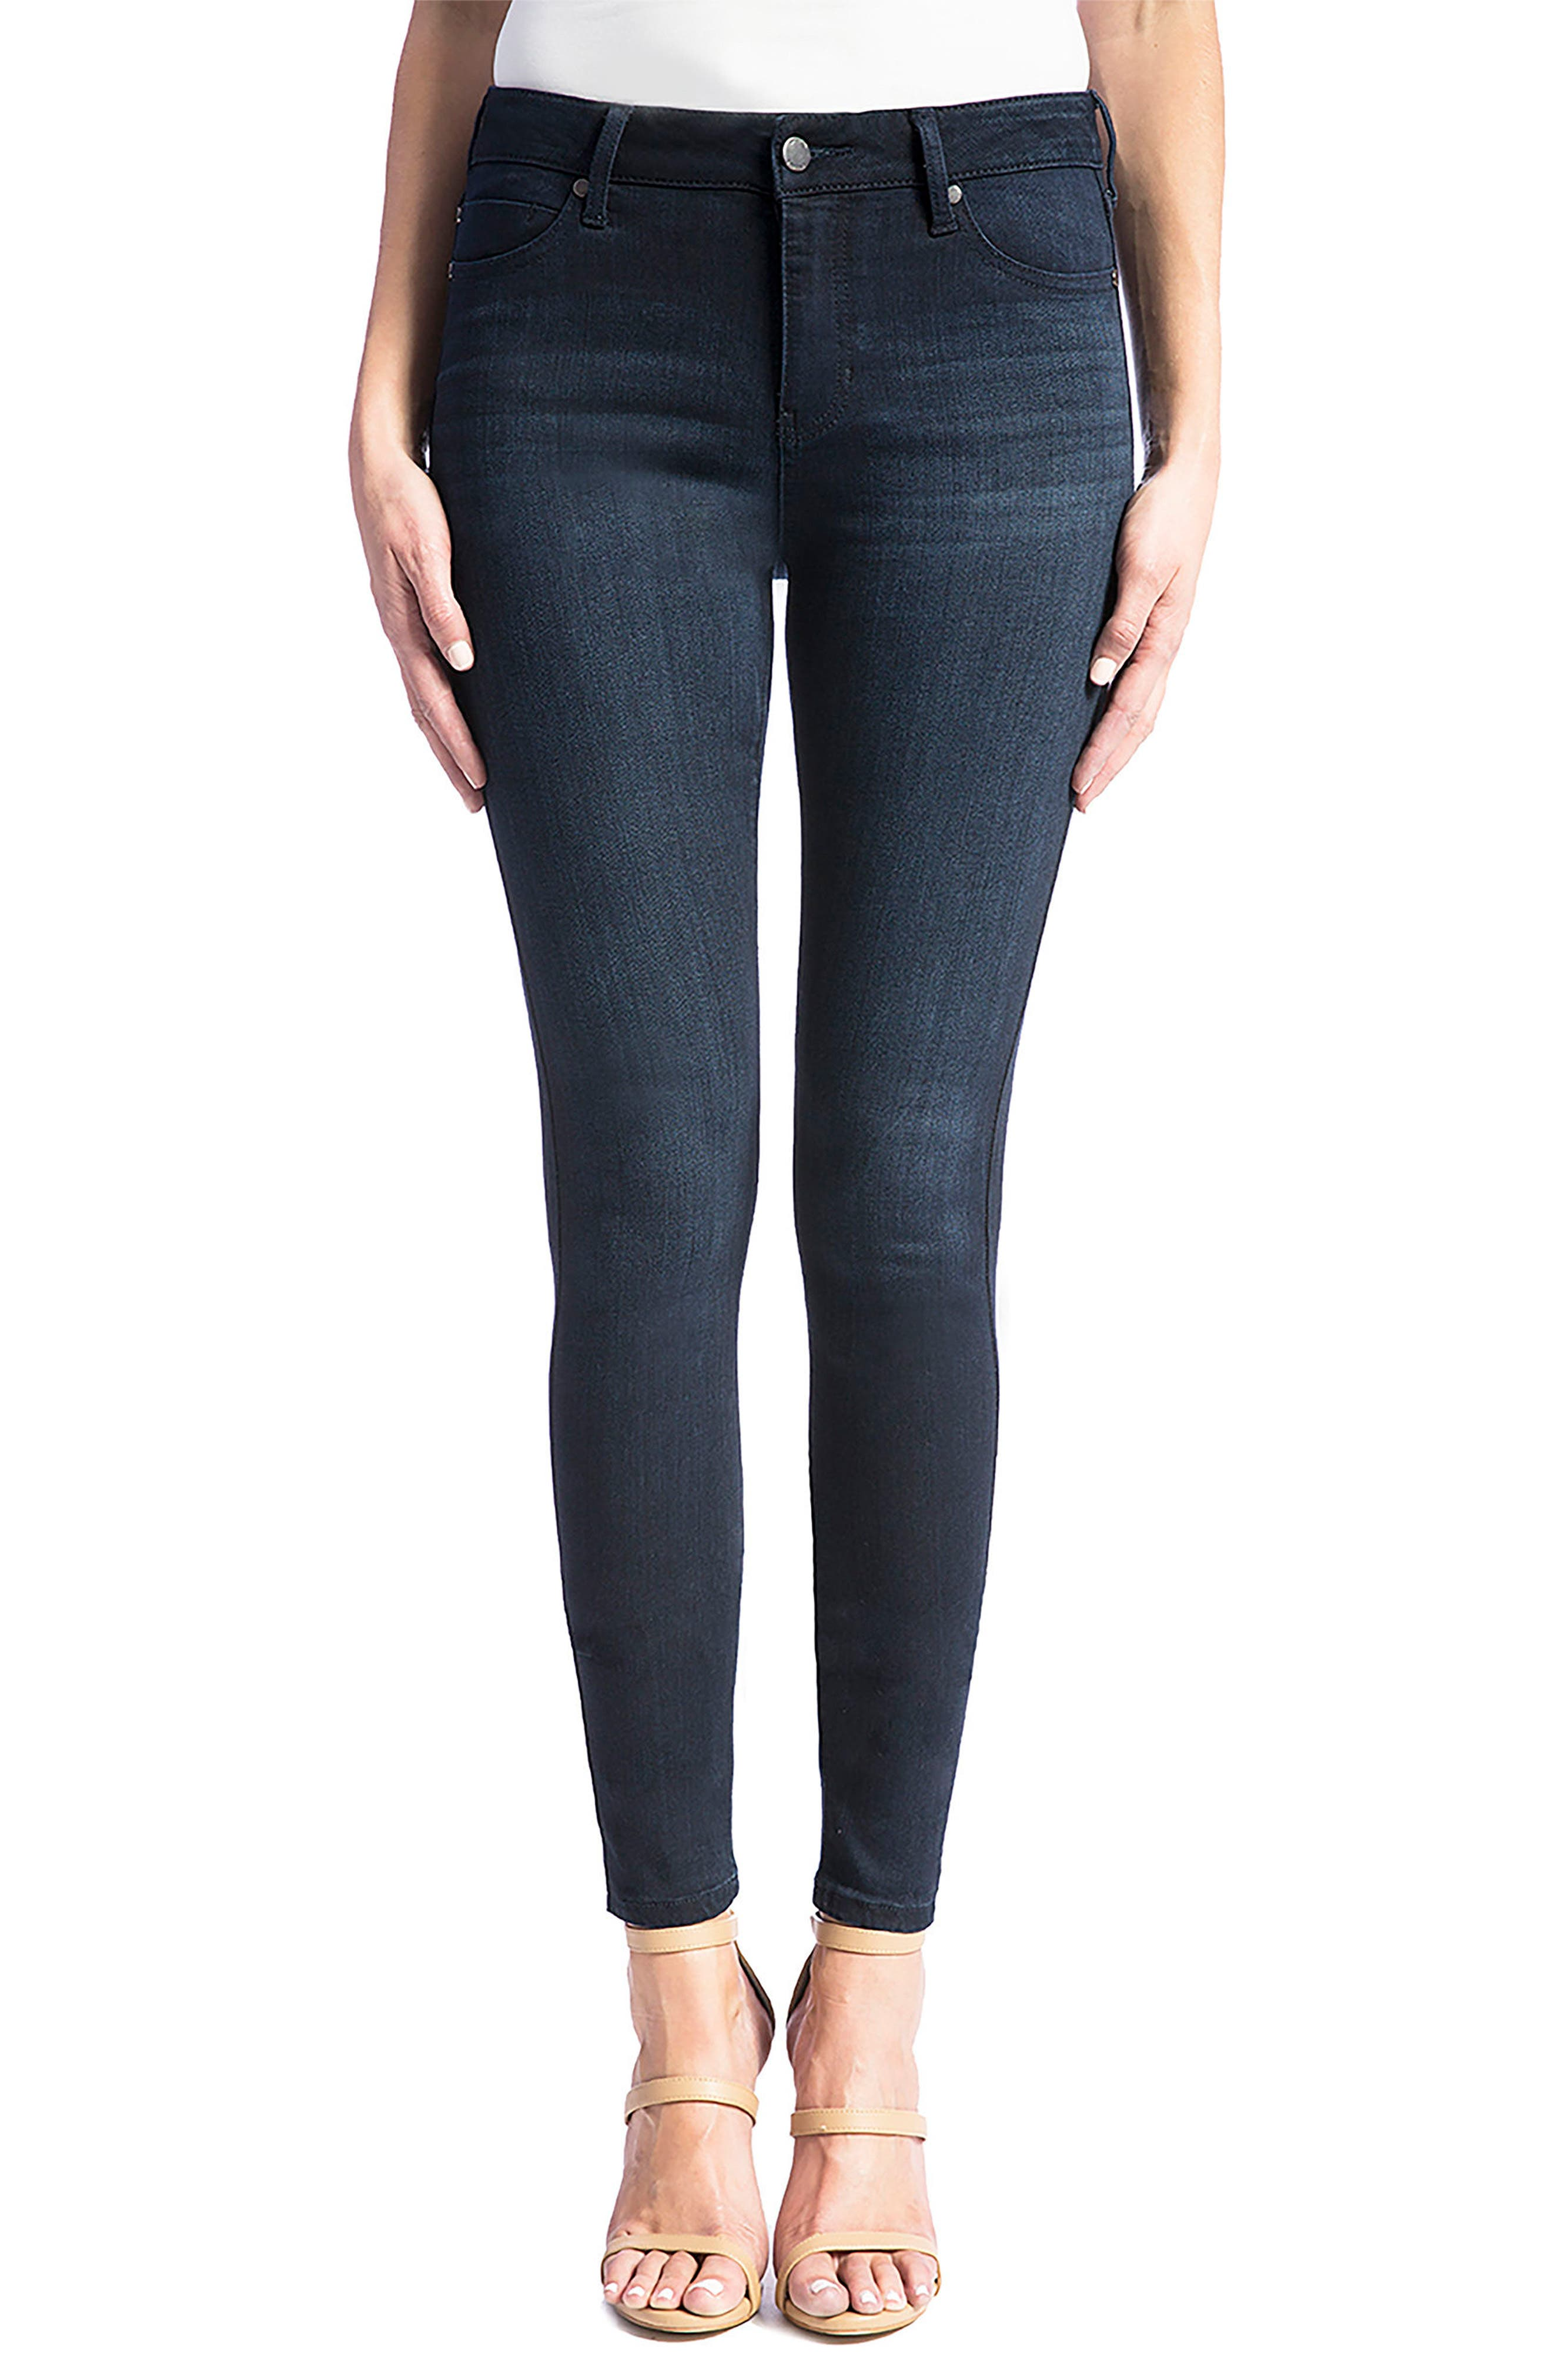 Alternate Image 1 Selected - Liverpool Jeans Co. Abby Stretch Skinny Jeans (Stone) (Petite)